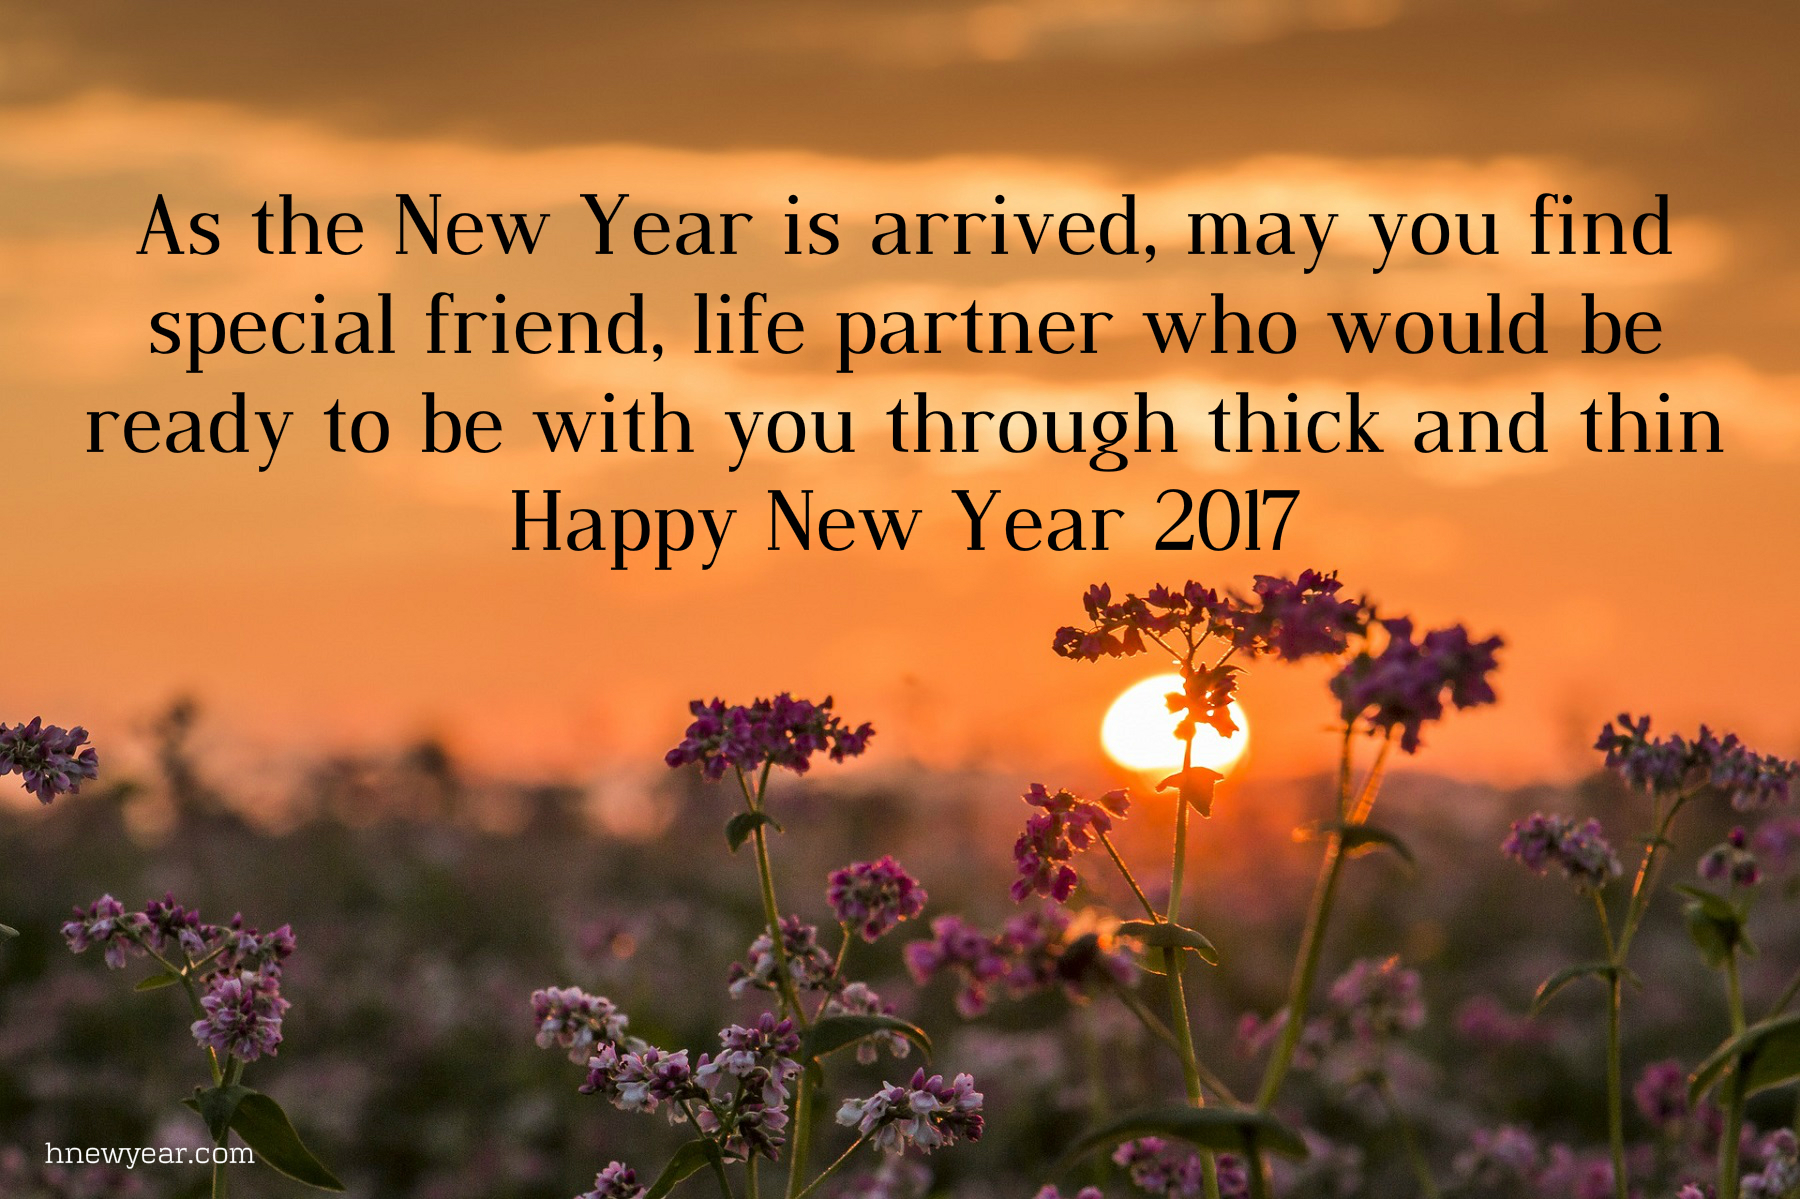 50 Heart Touching New Year Wishes For Someone Special